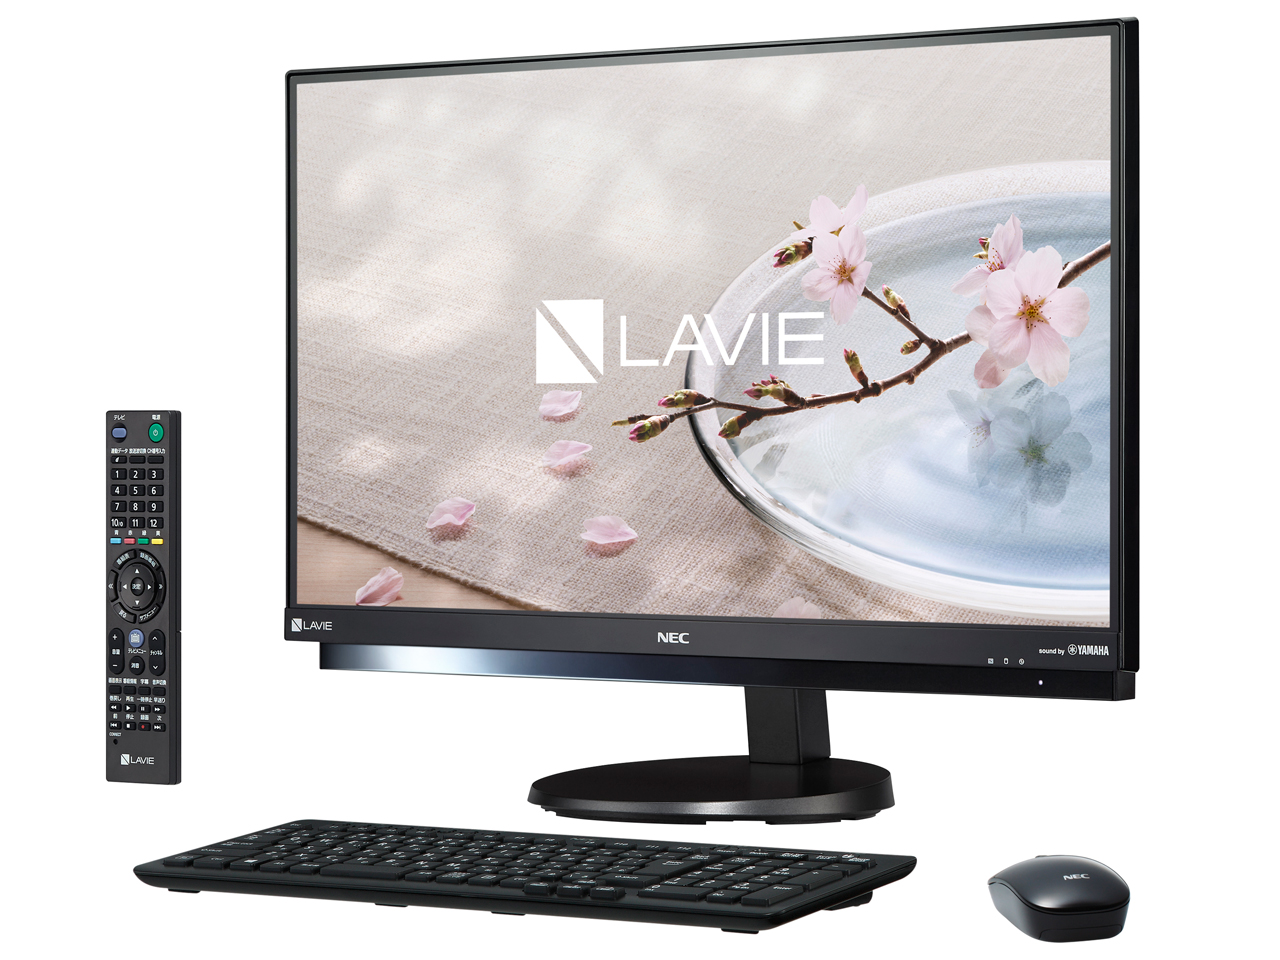 LAVIE Desk All-in-one DA970/GAB PC-DA970GAB の製品画像